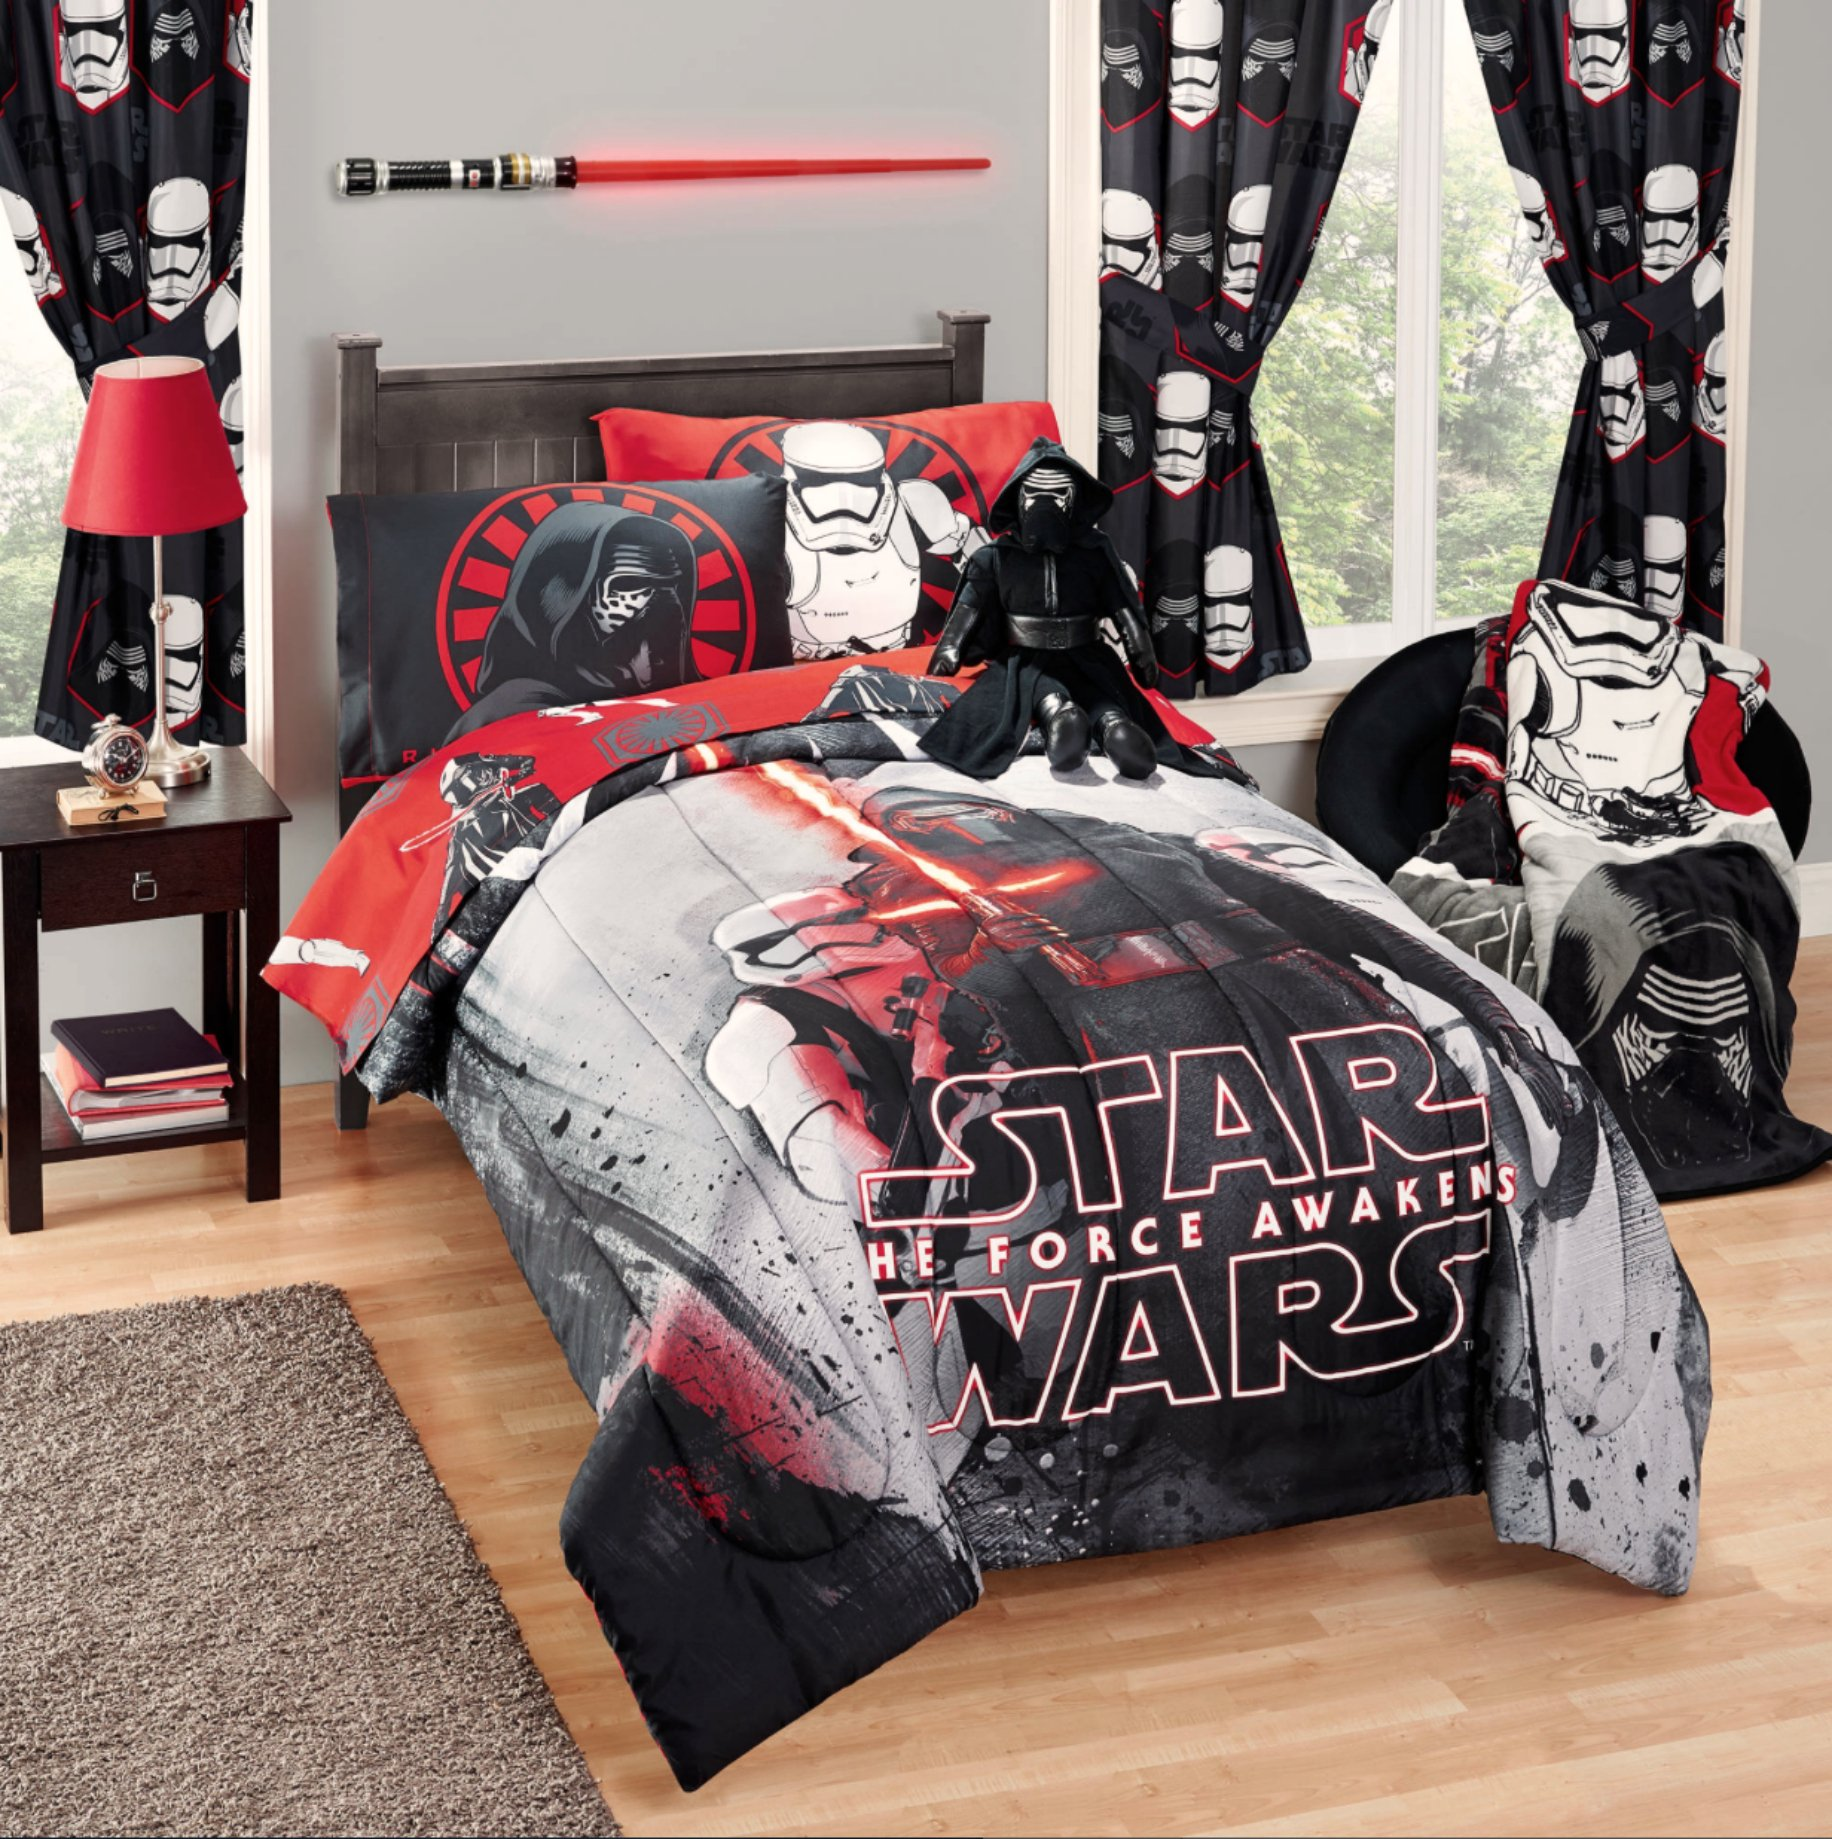 Disney Star Wars 5 Piece Kids Bed in a Bag Full Bedding Set - Reversible Comforter, Sheets & Pillow Cases